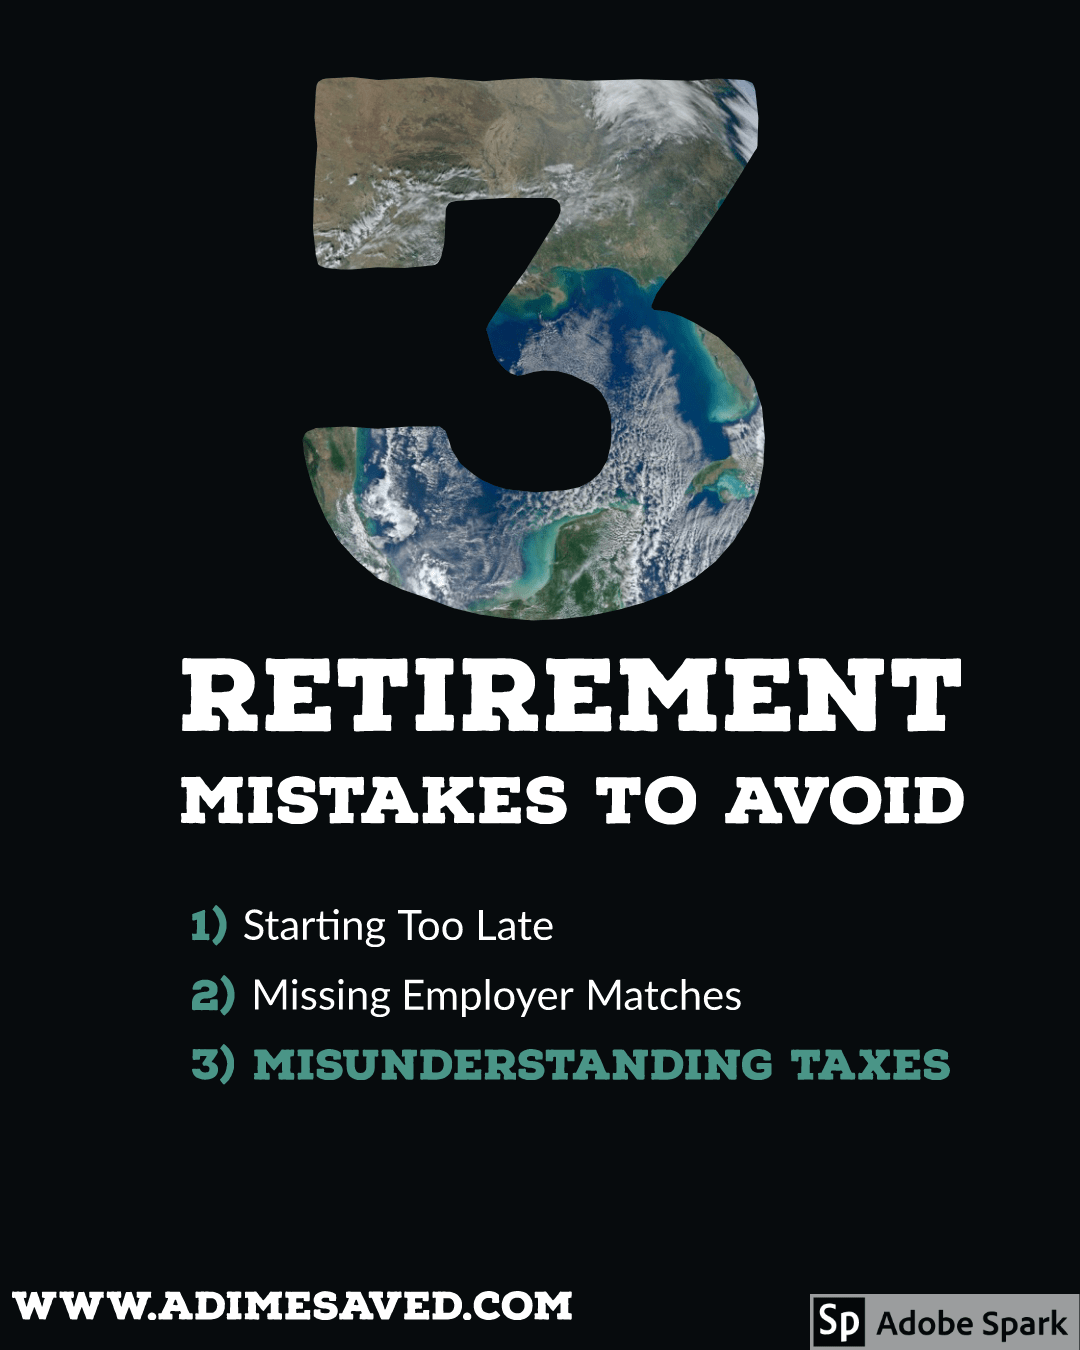 3 Retirement Mistakes to Avoid